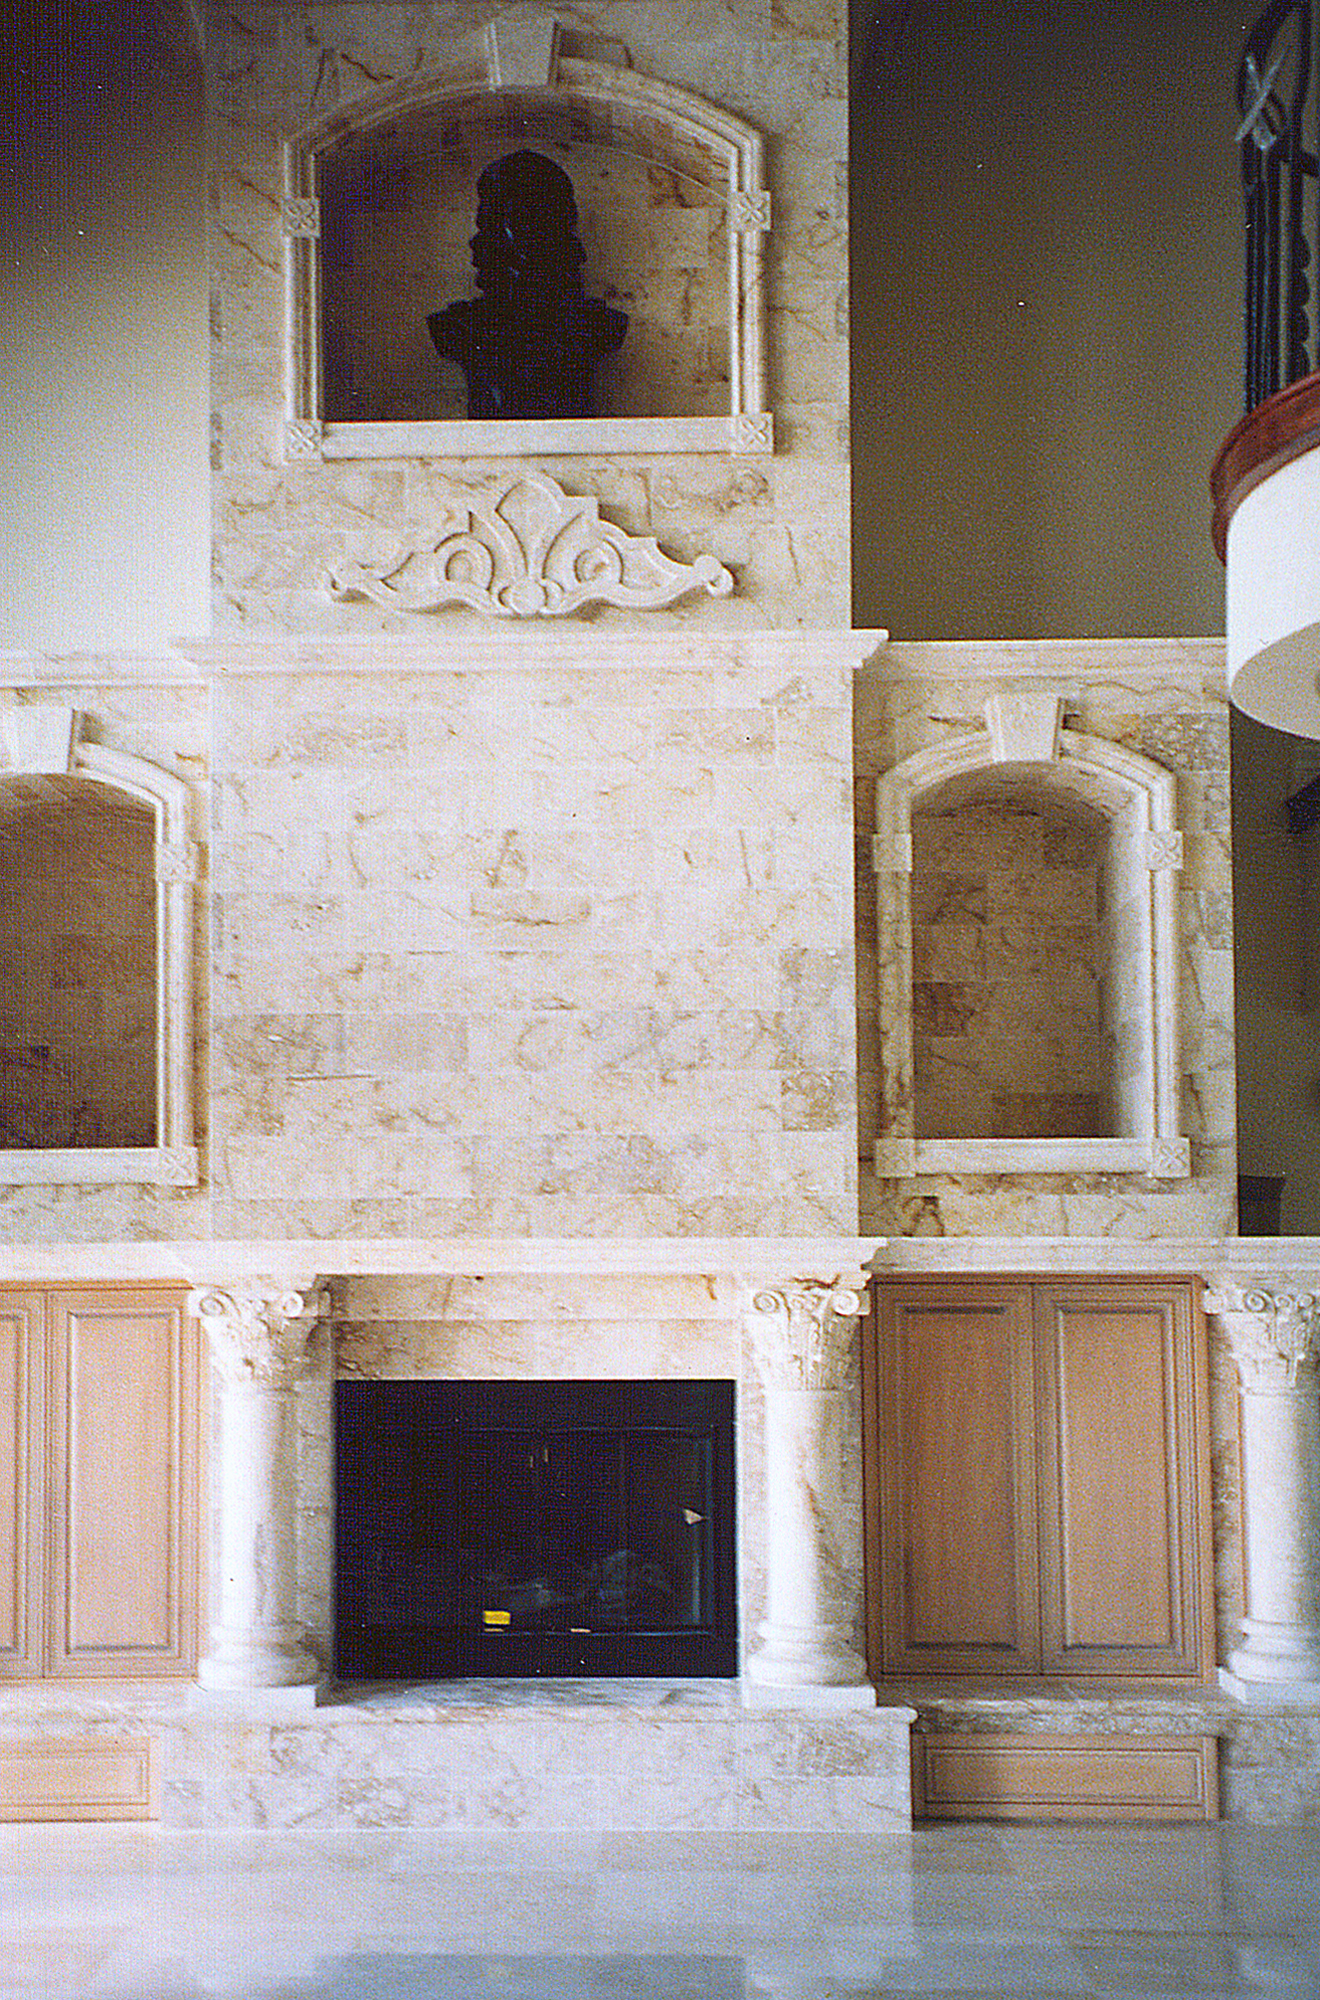 The Palais_1320x2000_Boca Ciega Bay. St. Pete. Fireplace wall. Paonessa - client  PHOTO4.jpg